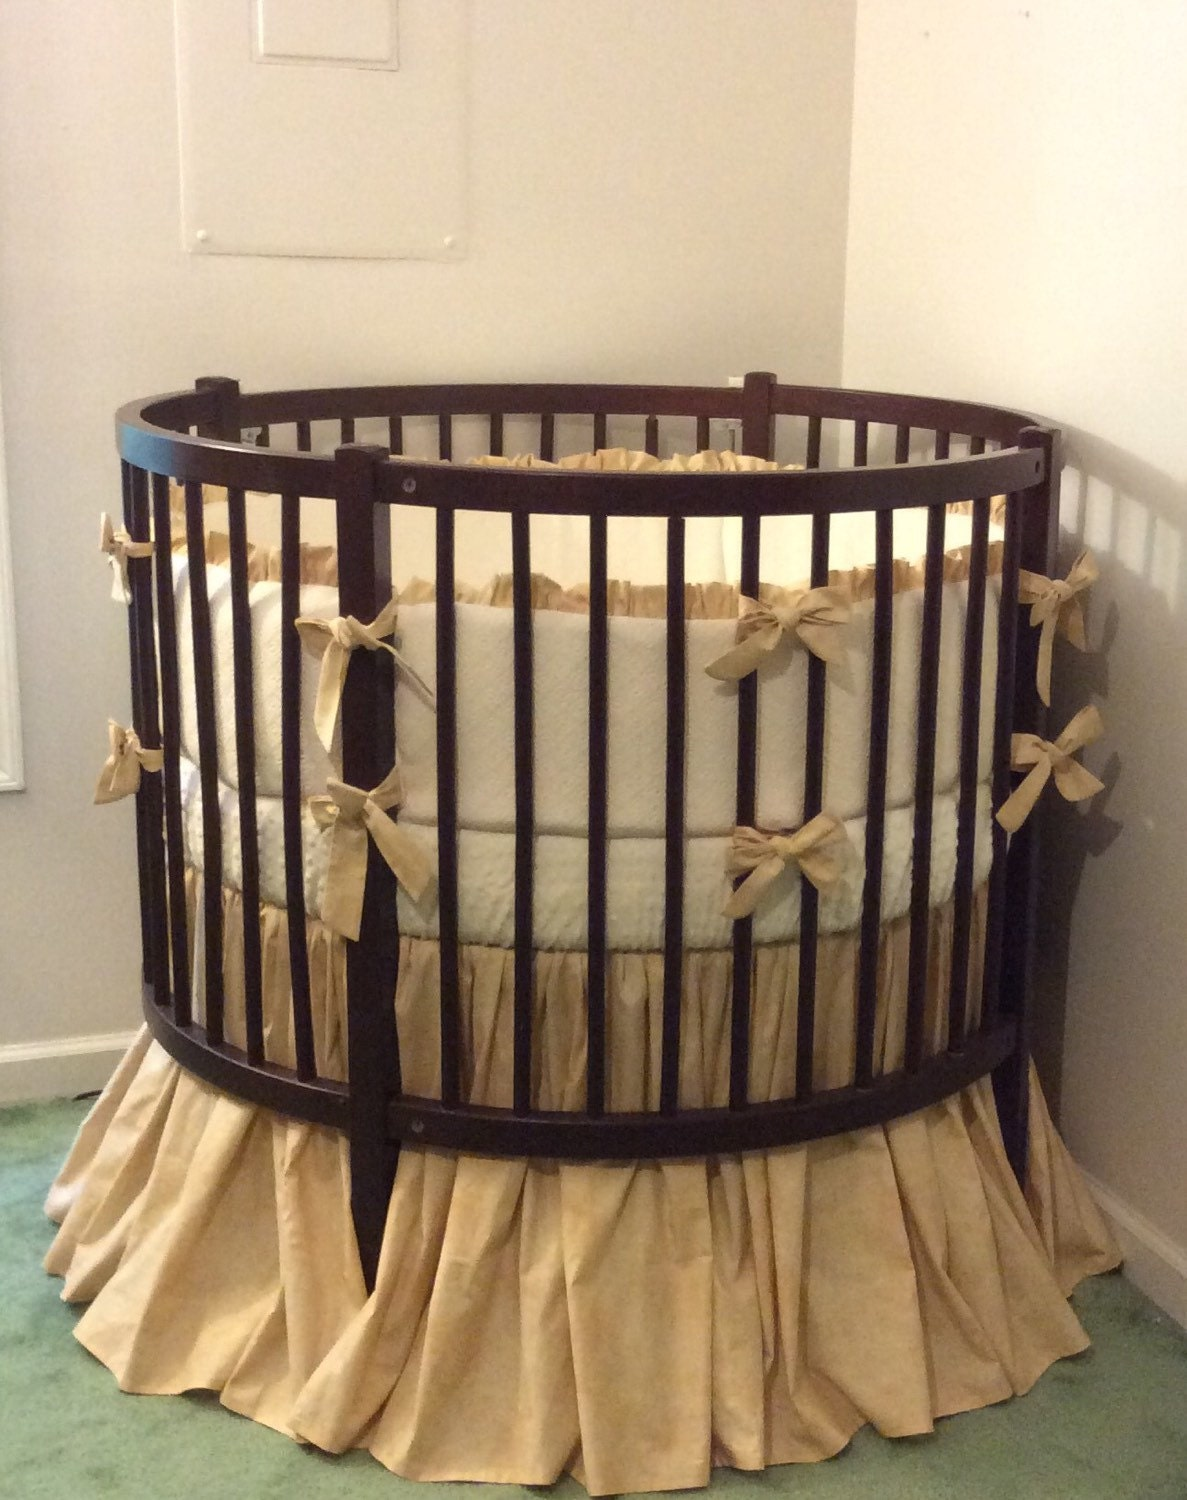 Rustic Round Crib Bedding Set Tan and Cream by butterbeansboutique